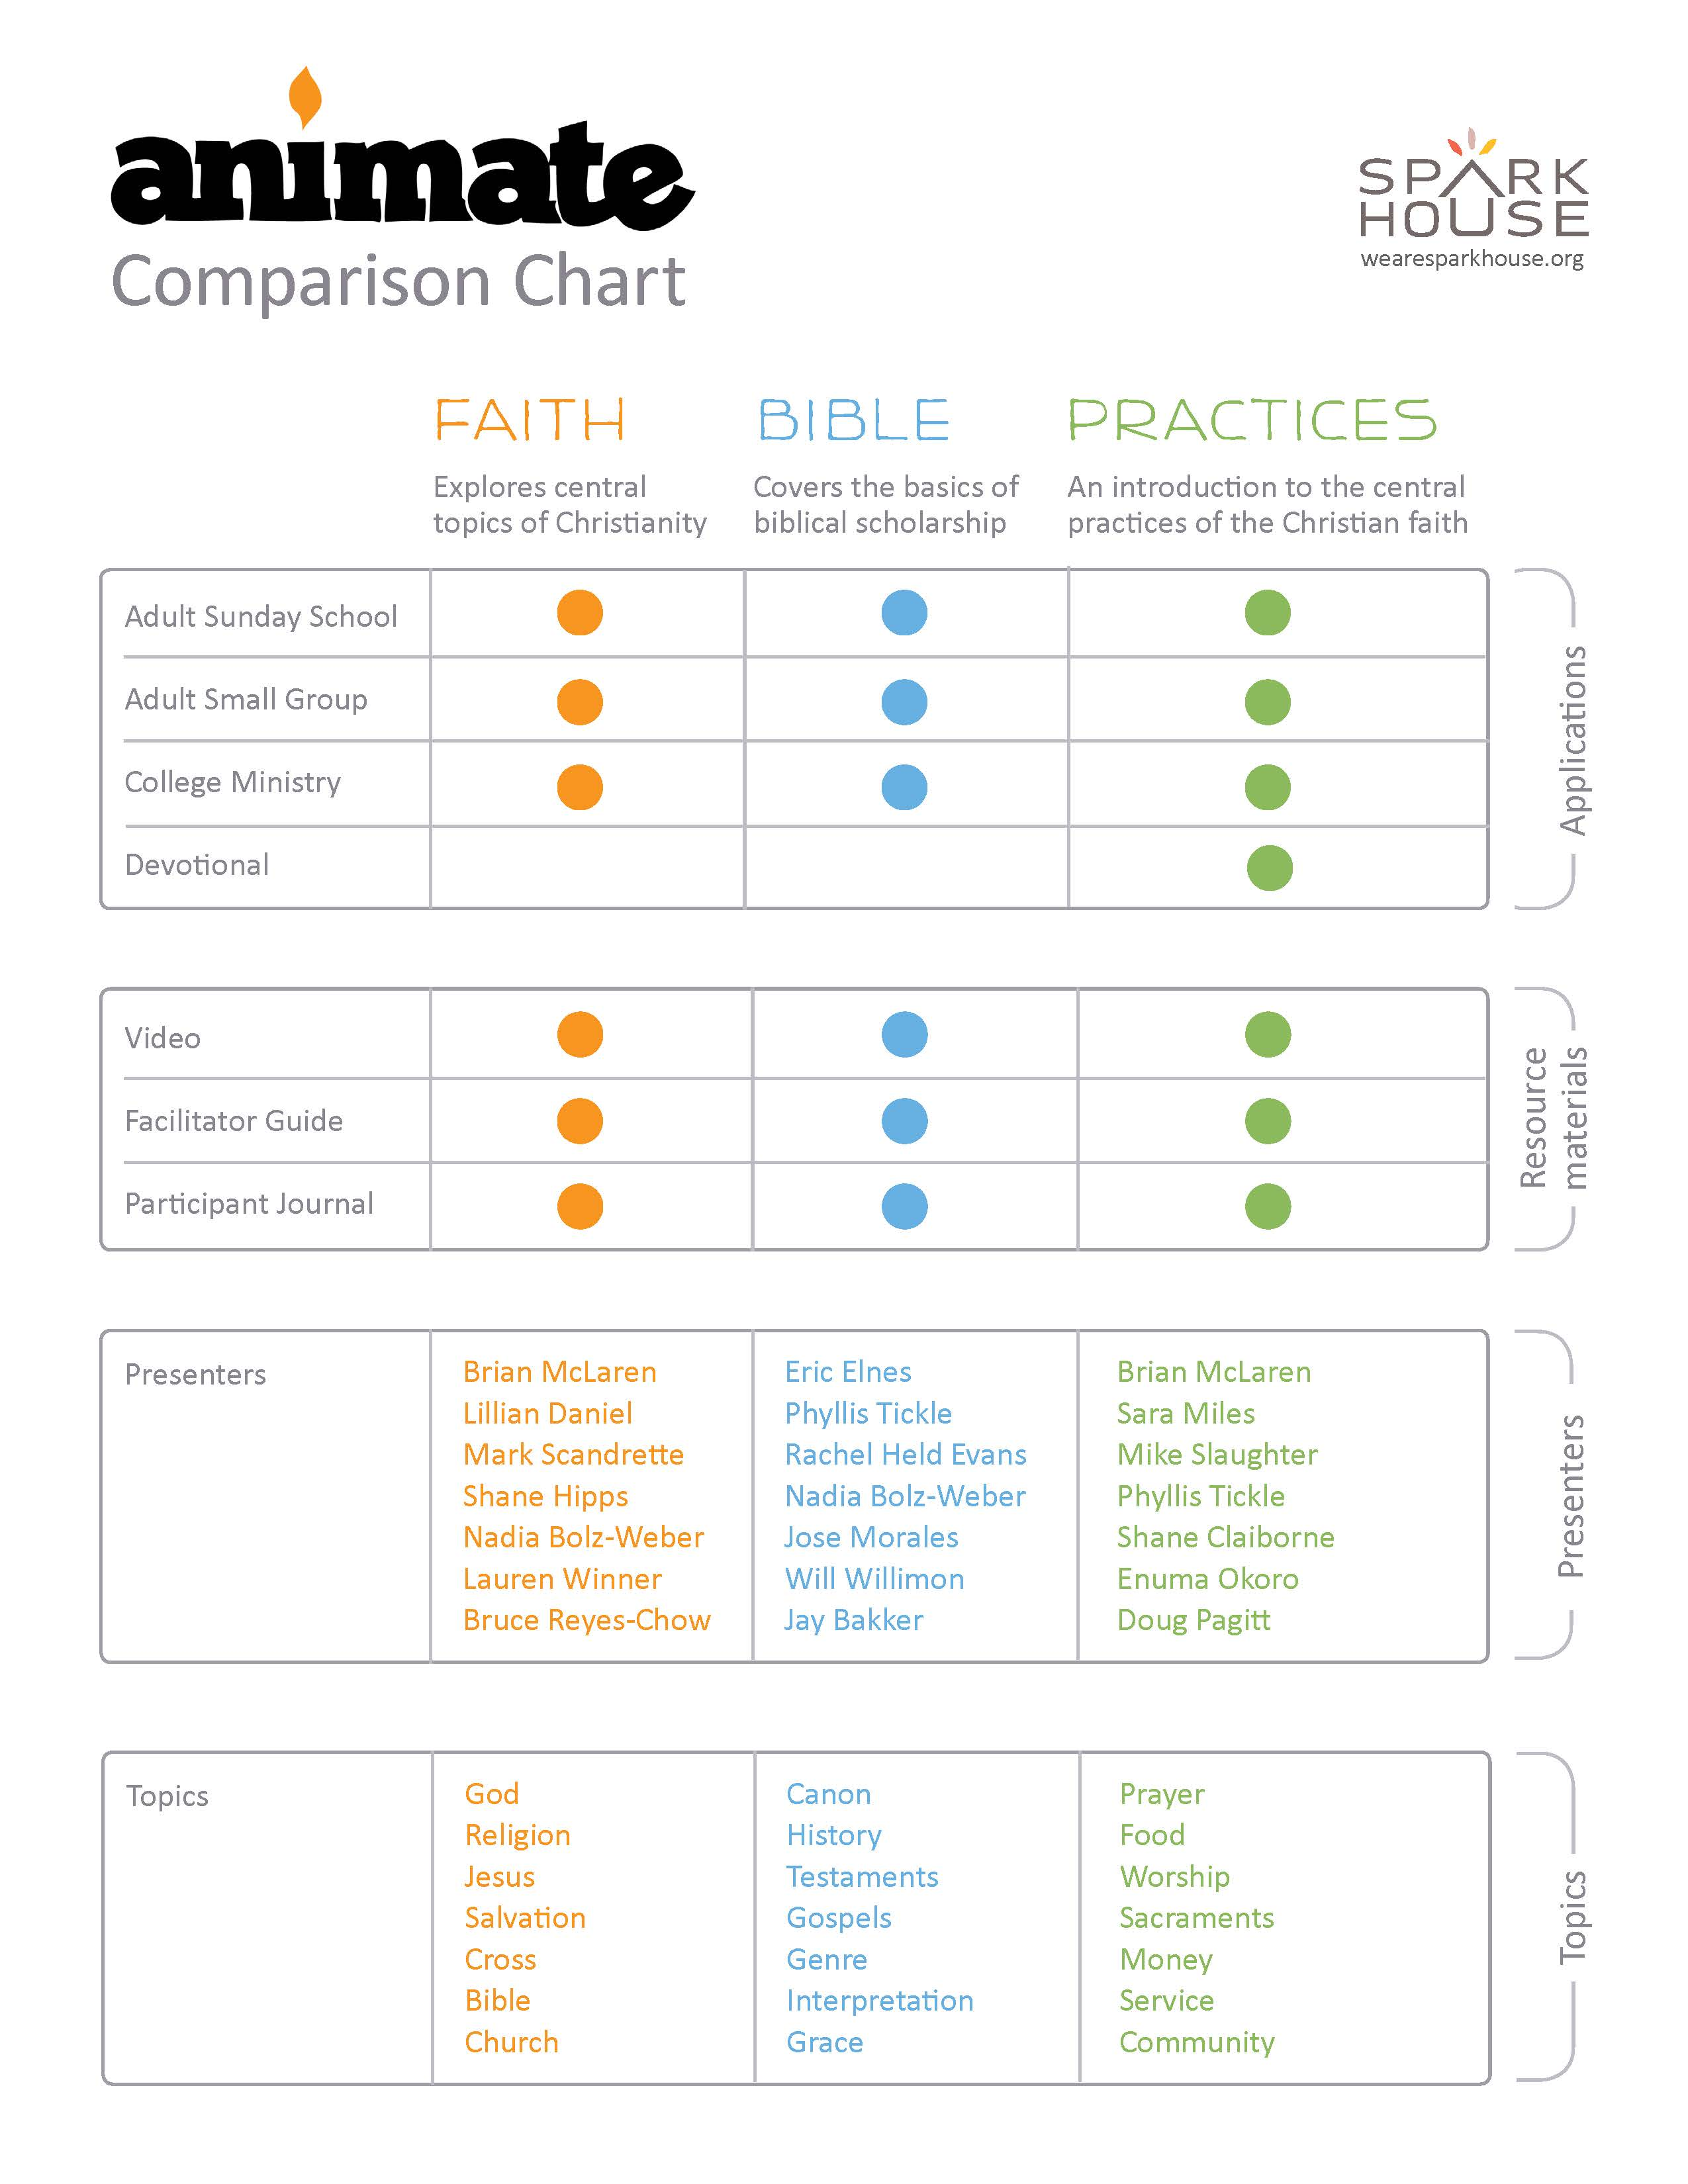 Worksheets Bible Study Worksheets For Adults sparkhouse animate bible study sunday school for adults comparison chart